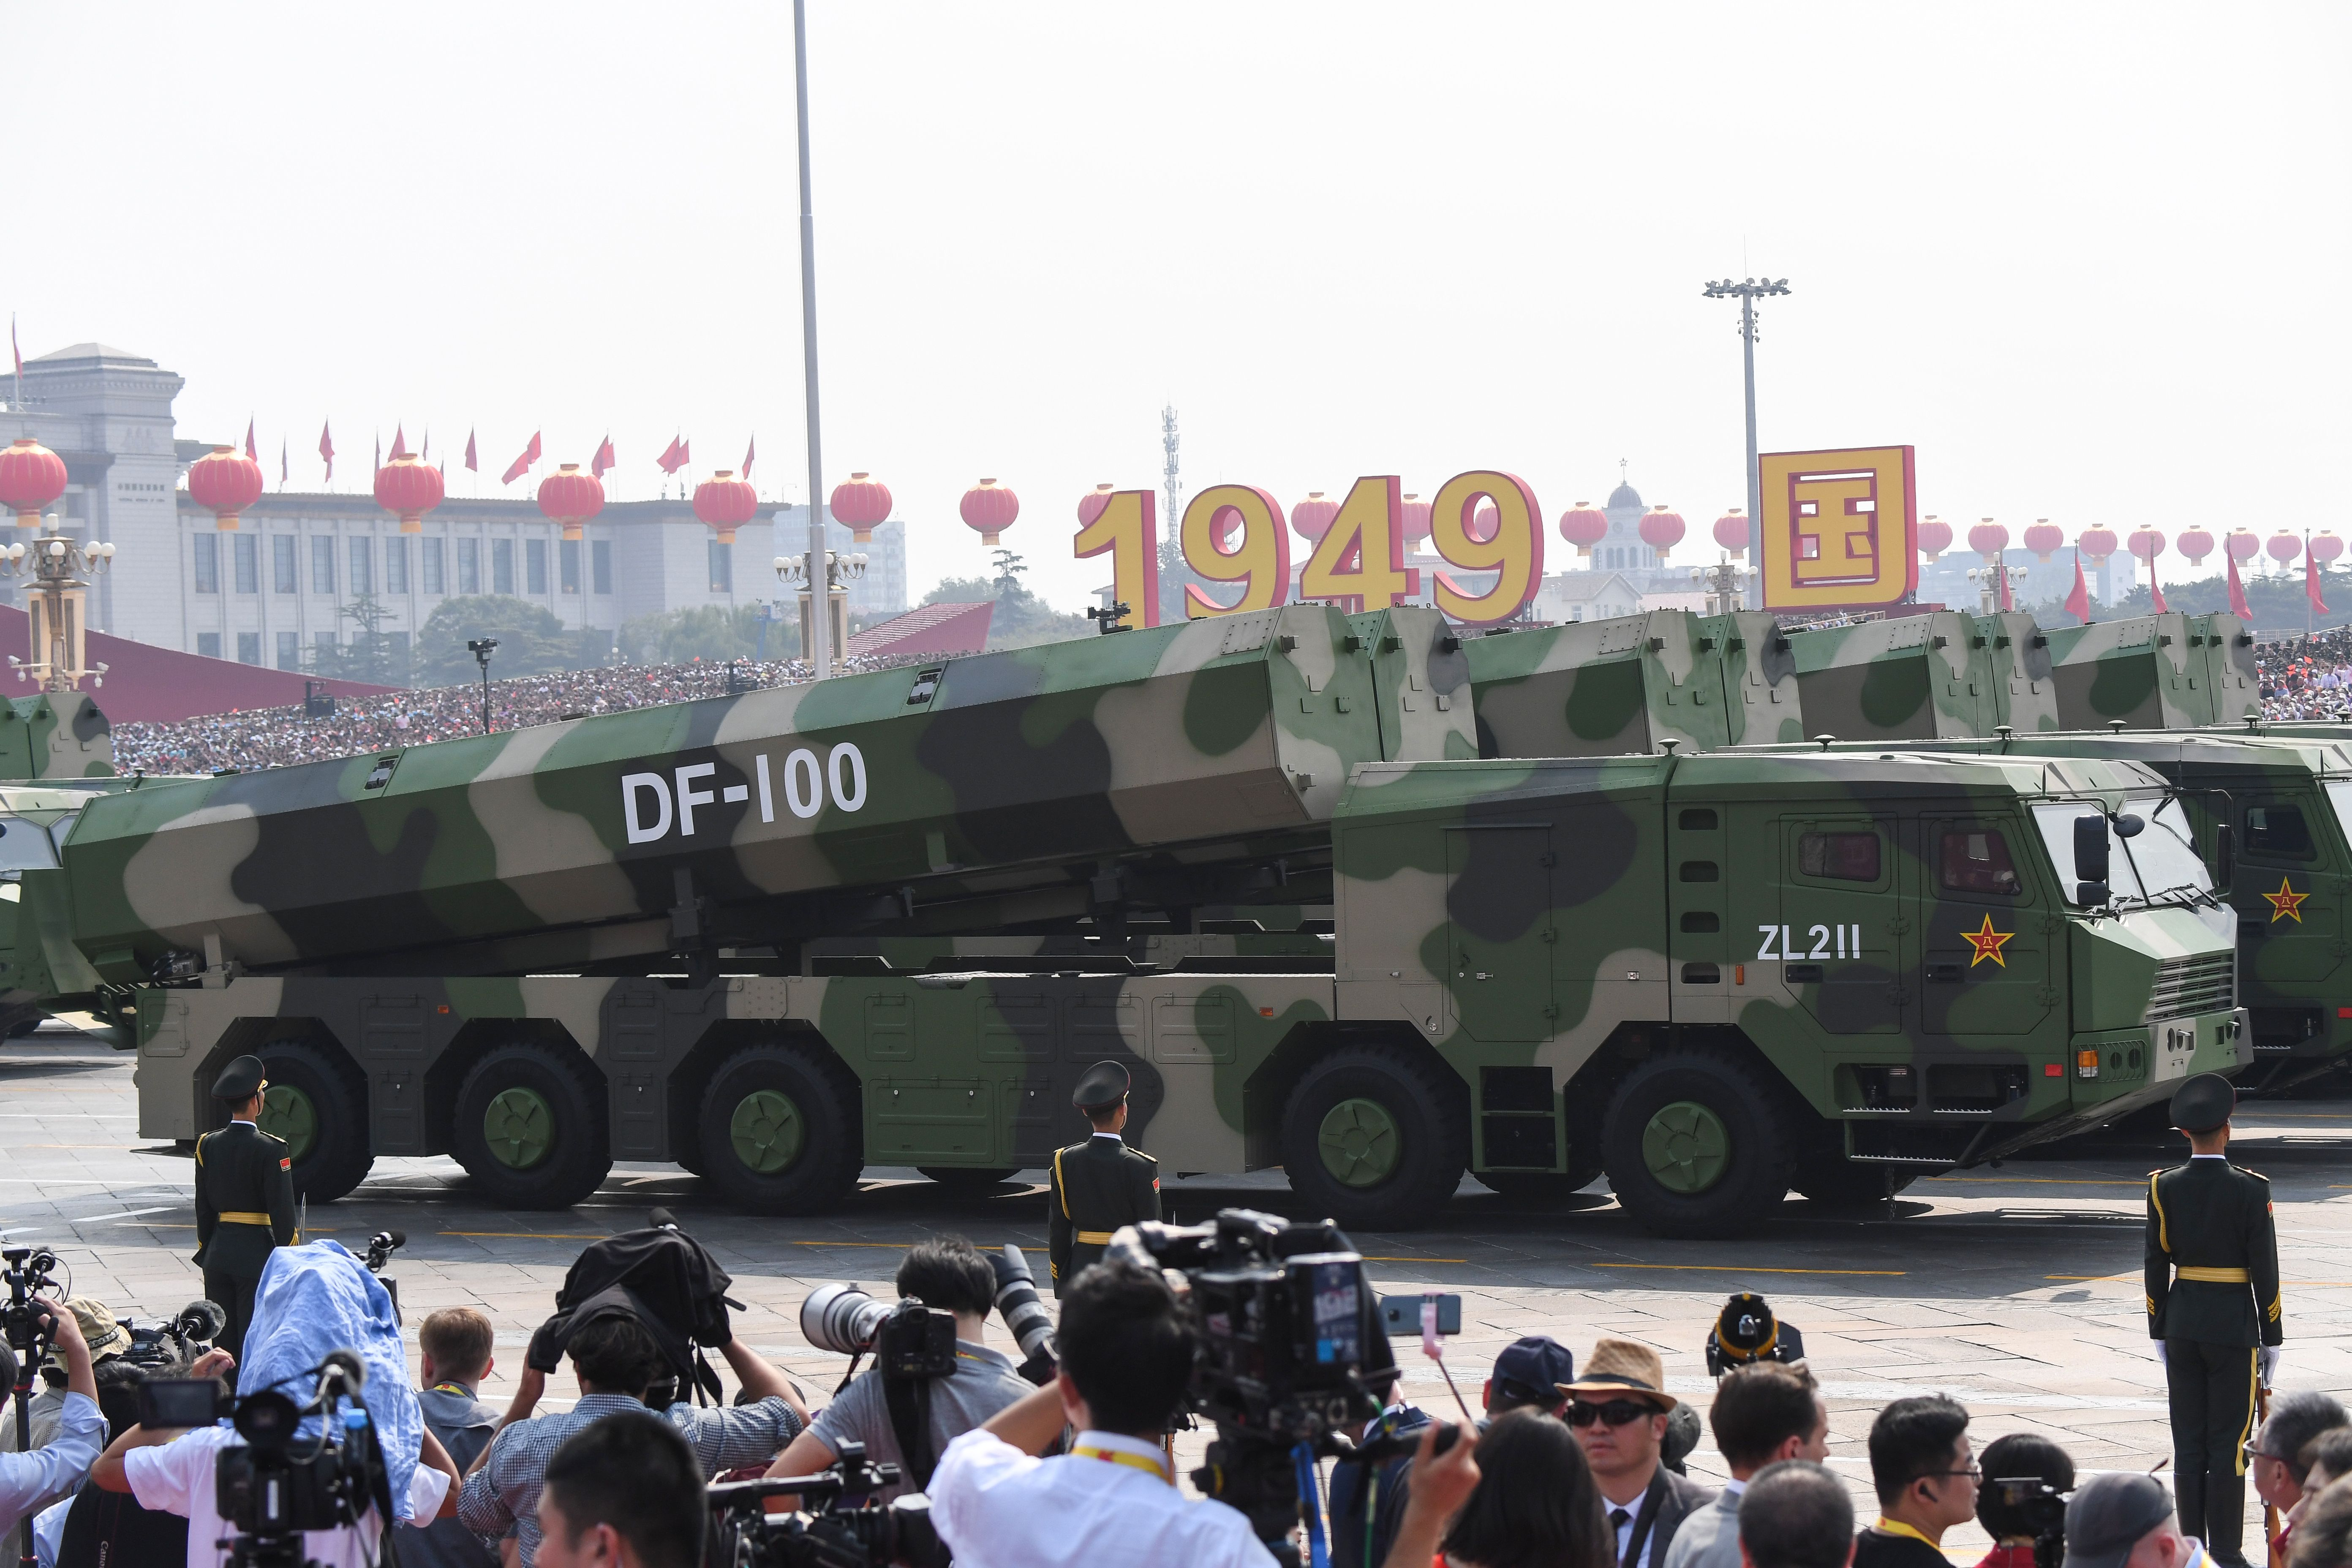 Military vehicles carry DF-100 ground-based land-attack missiles. (Greg Baker/AFP via Getty Images)